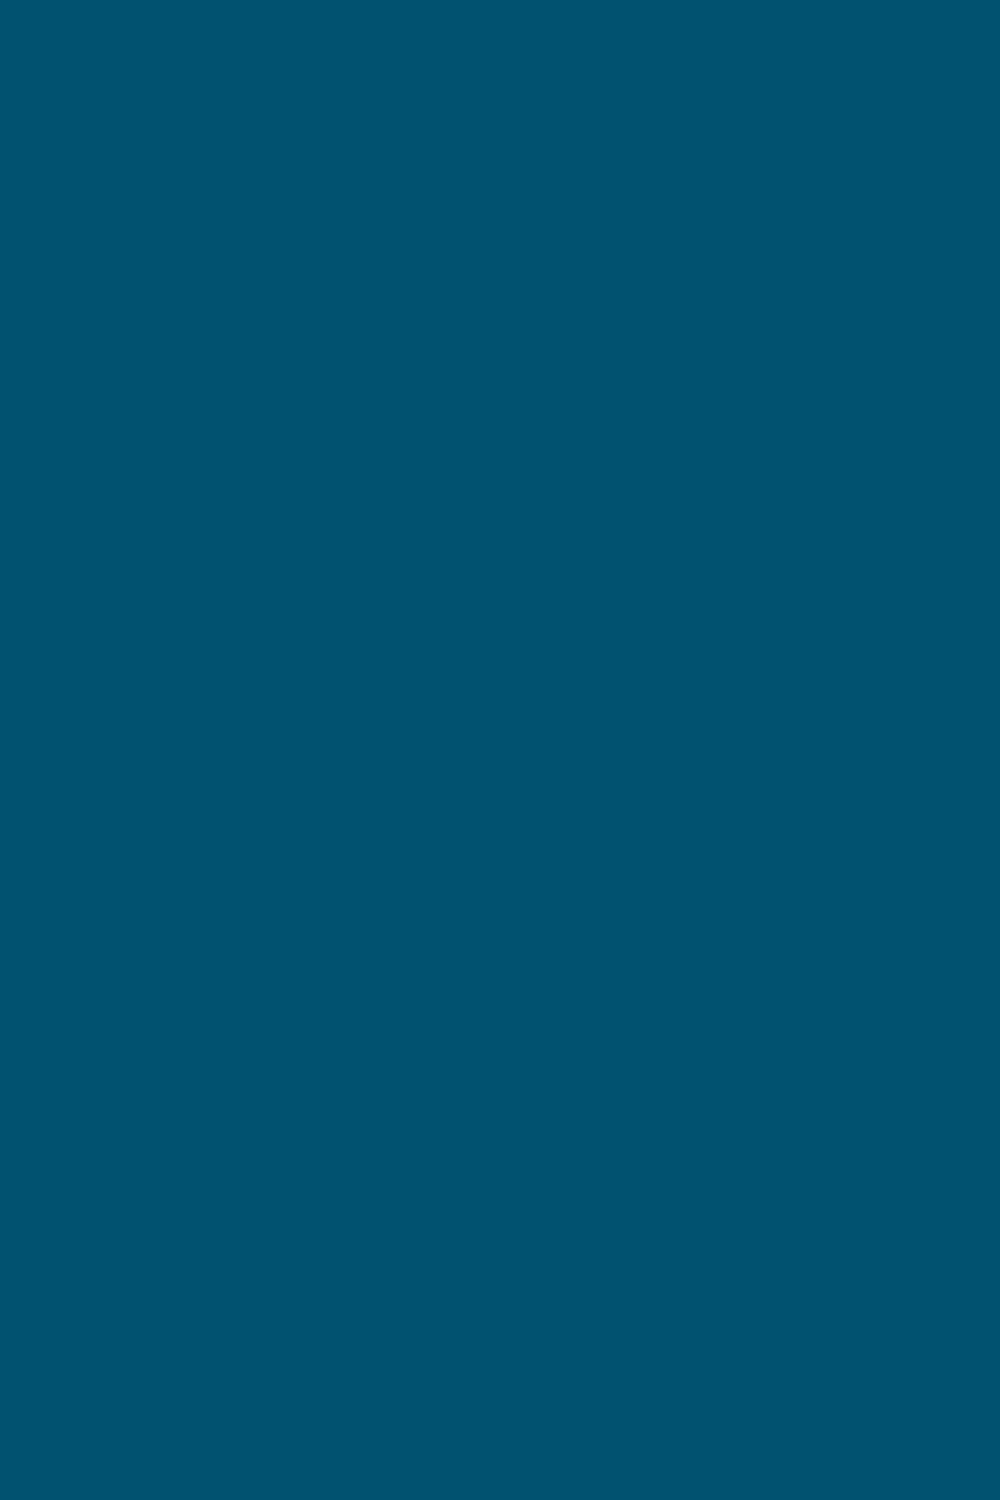 Plain Blue Green Background Solid Color Backgrounds Green Wallpaper Blue Backgrounds Dark blue plain wallpaper hd